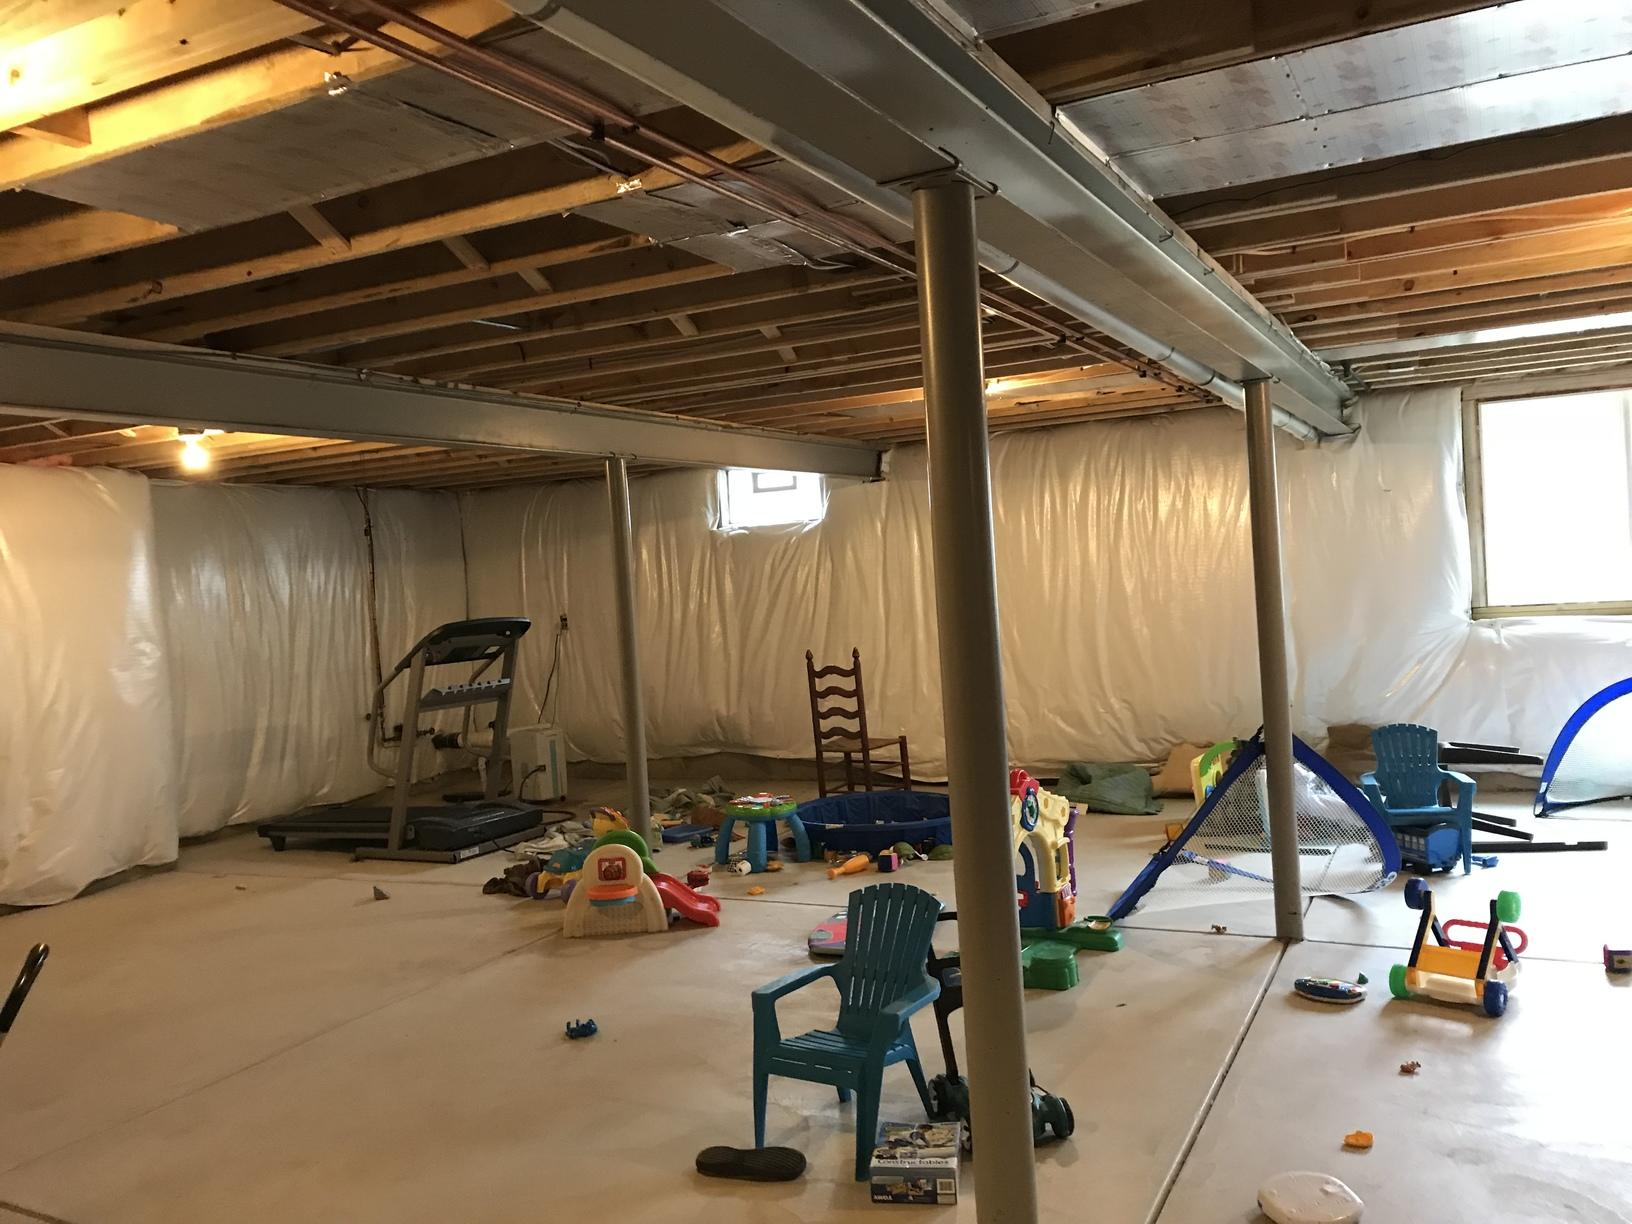 Remodeling a basement in Orchard Park, NY - Before Photo